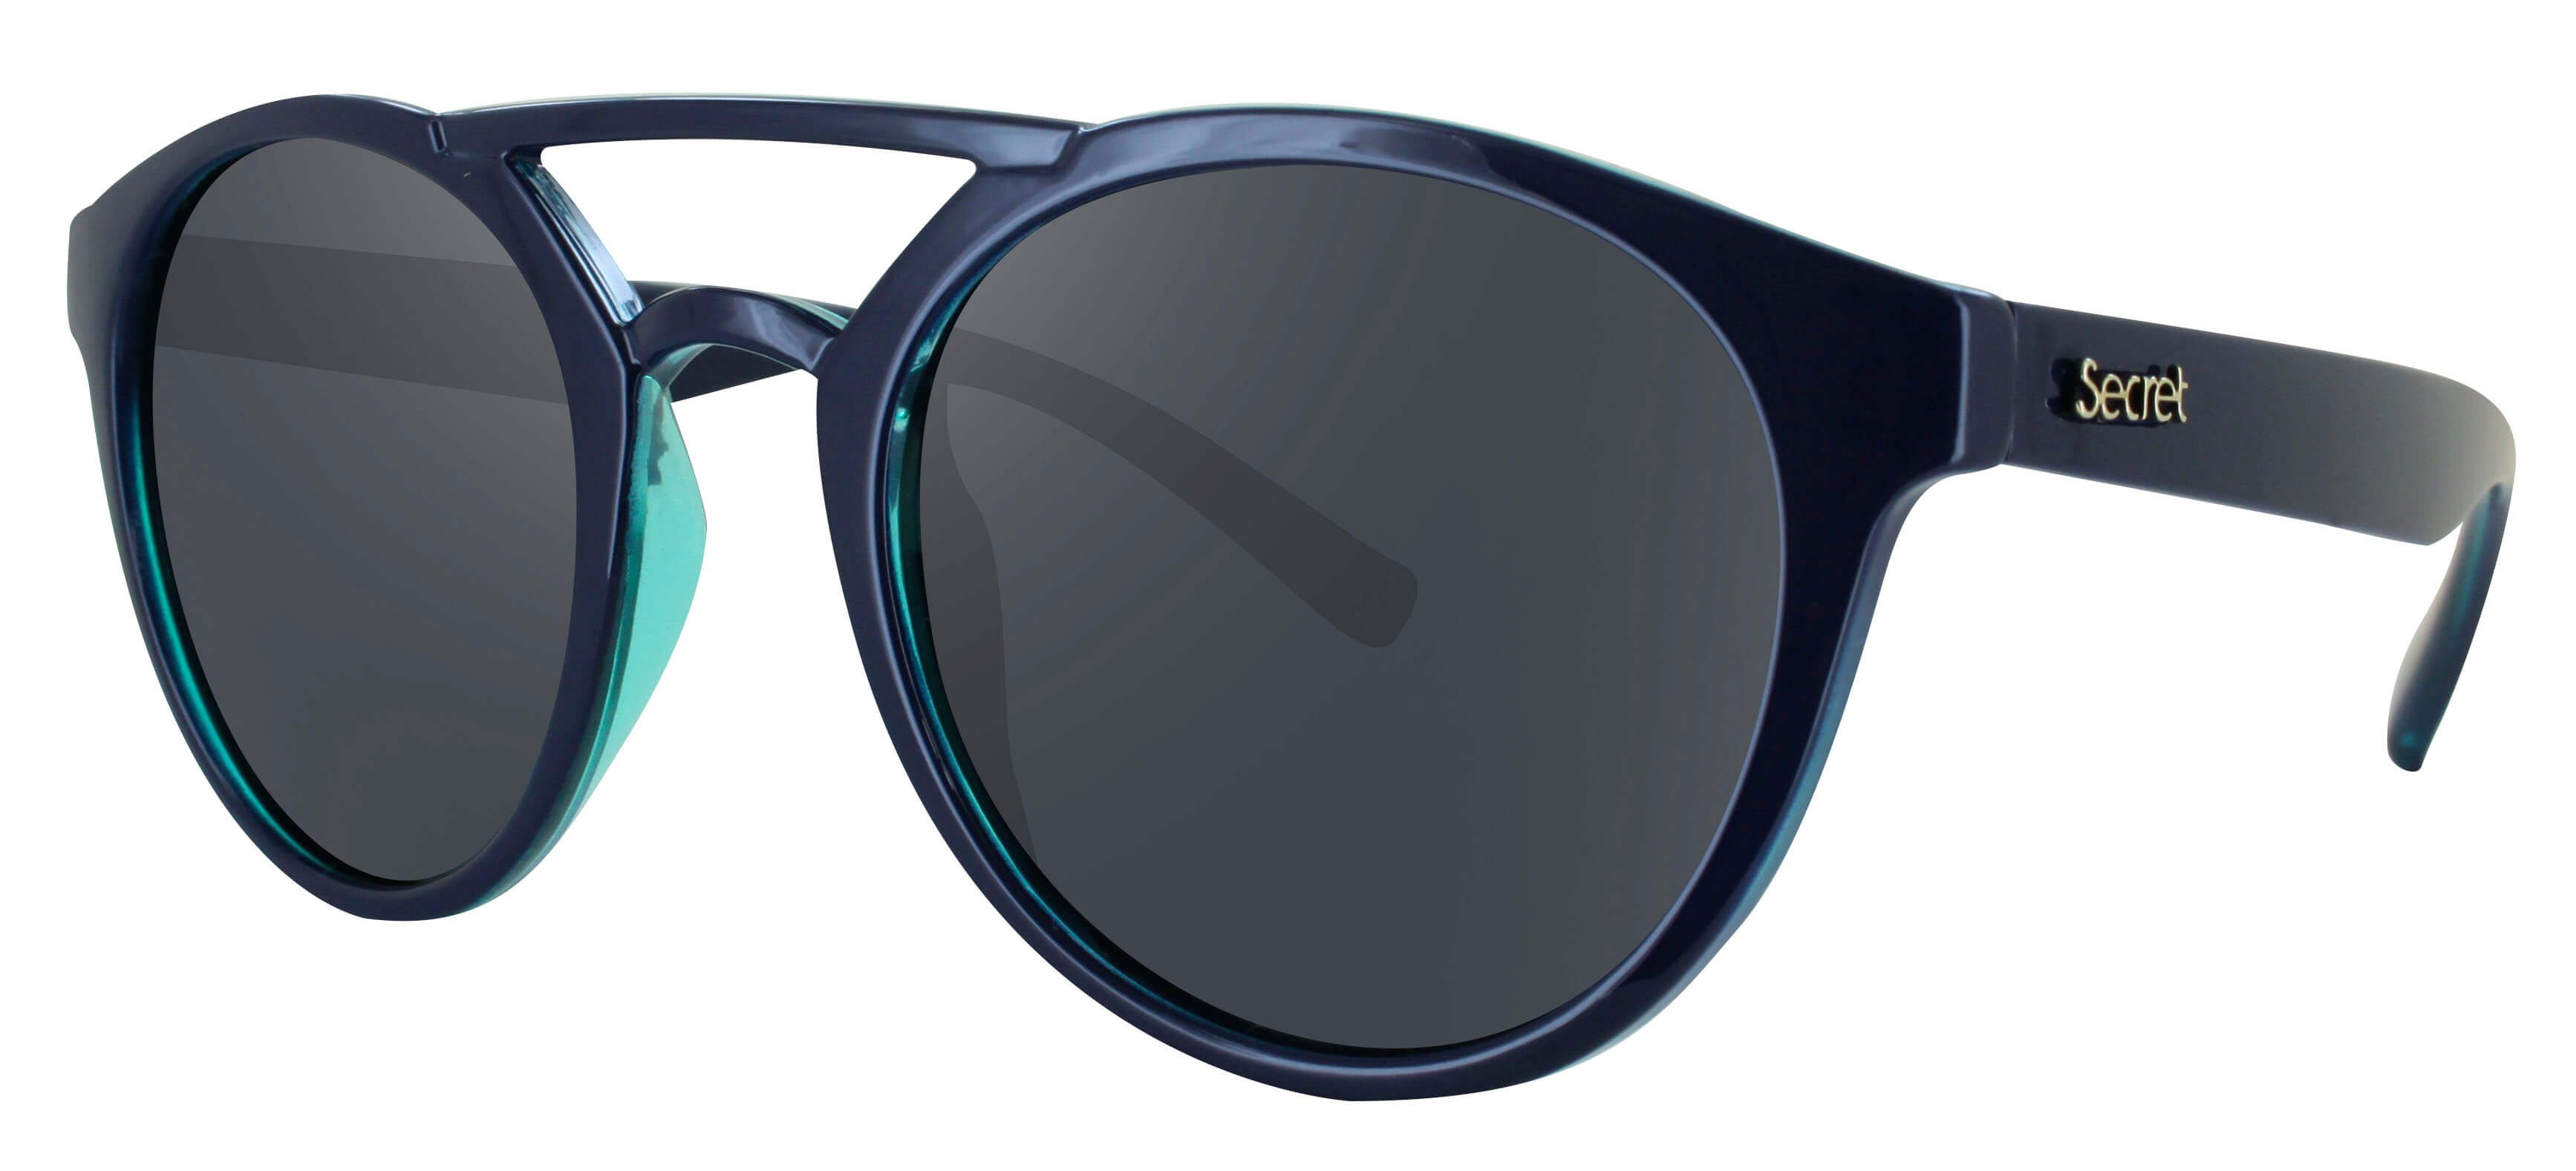 ÓC SECRET BREAKAWAY G.MARINE ON N.BLUE / POLARIZED GRAY